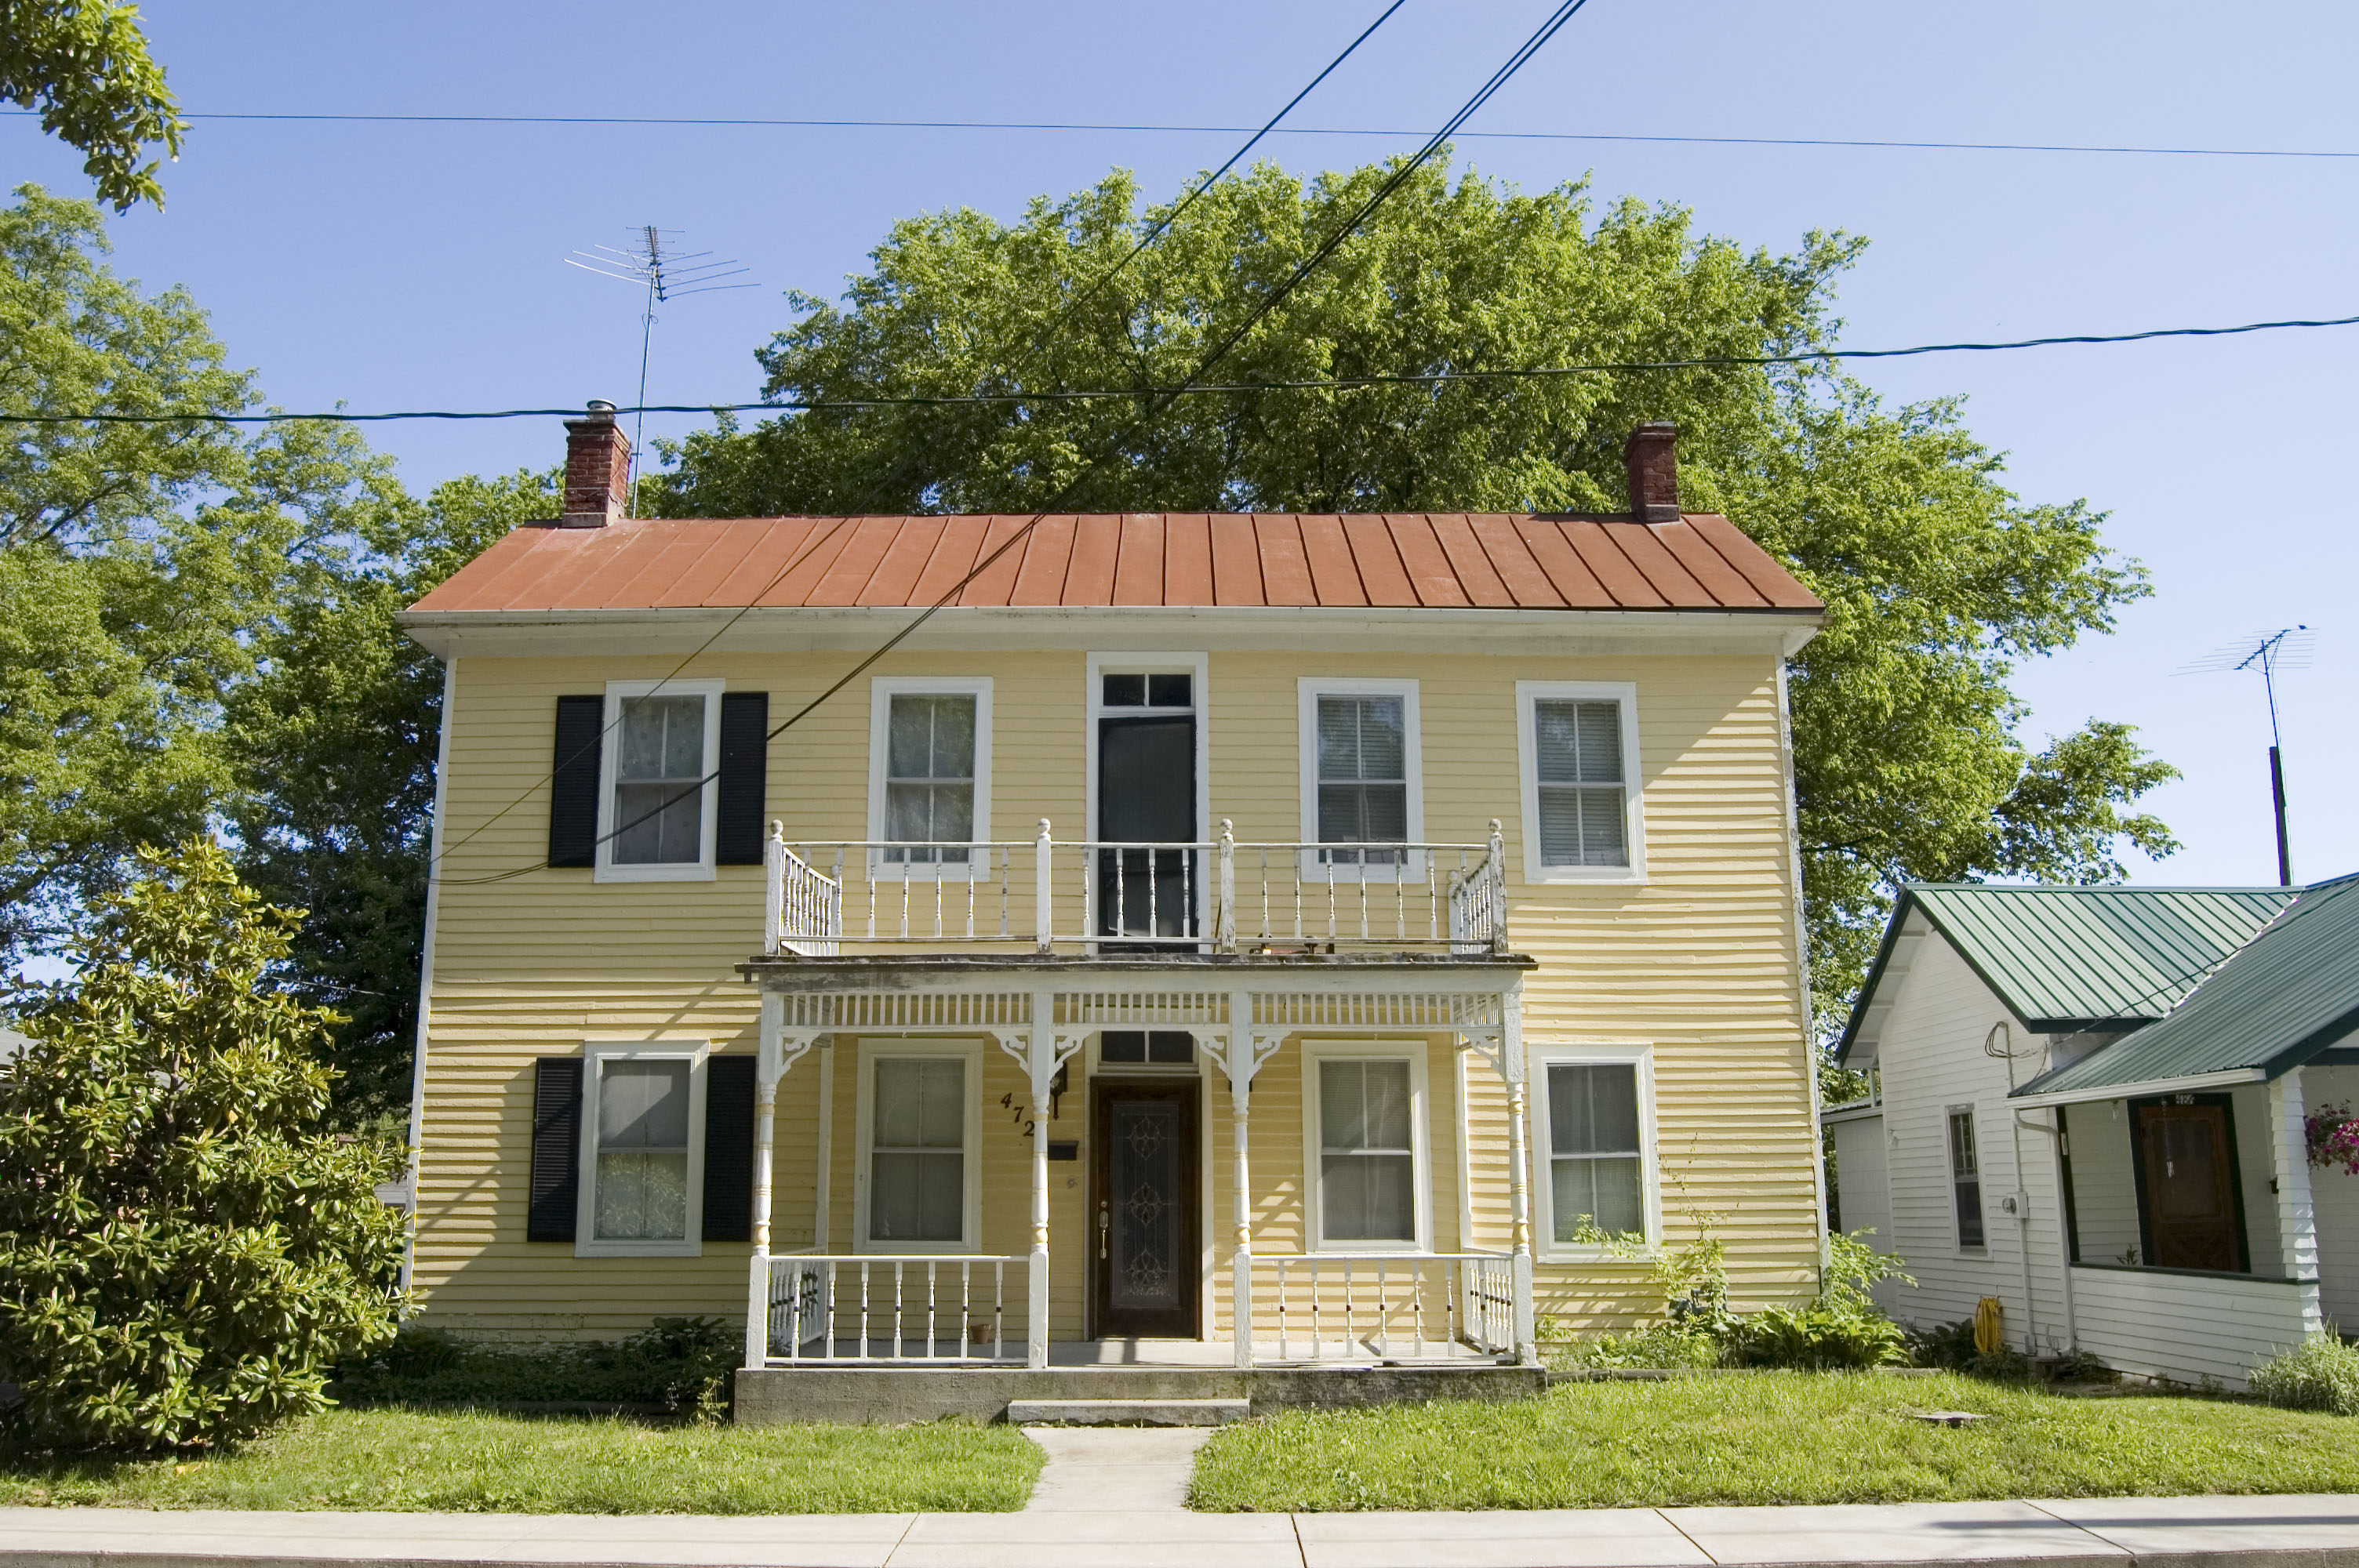 file photograph of a house in ste genevieve